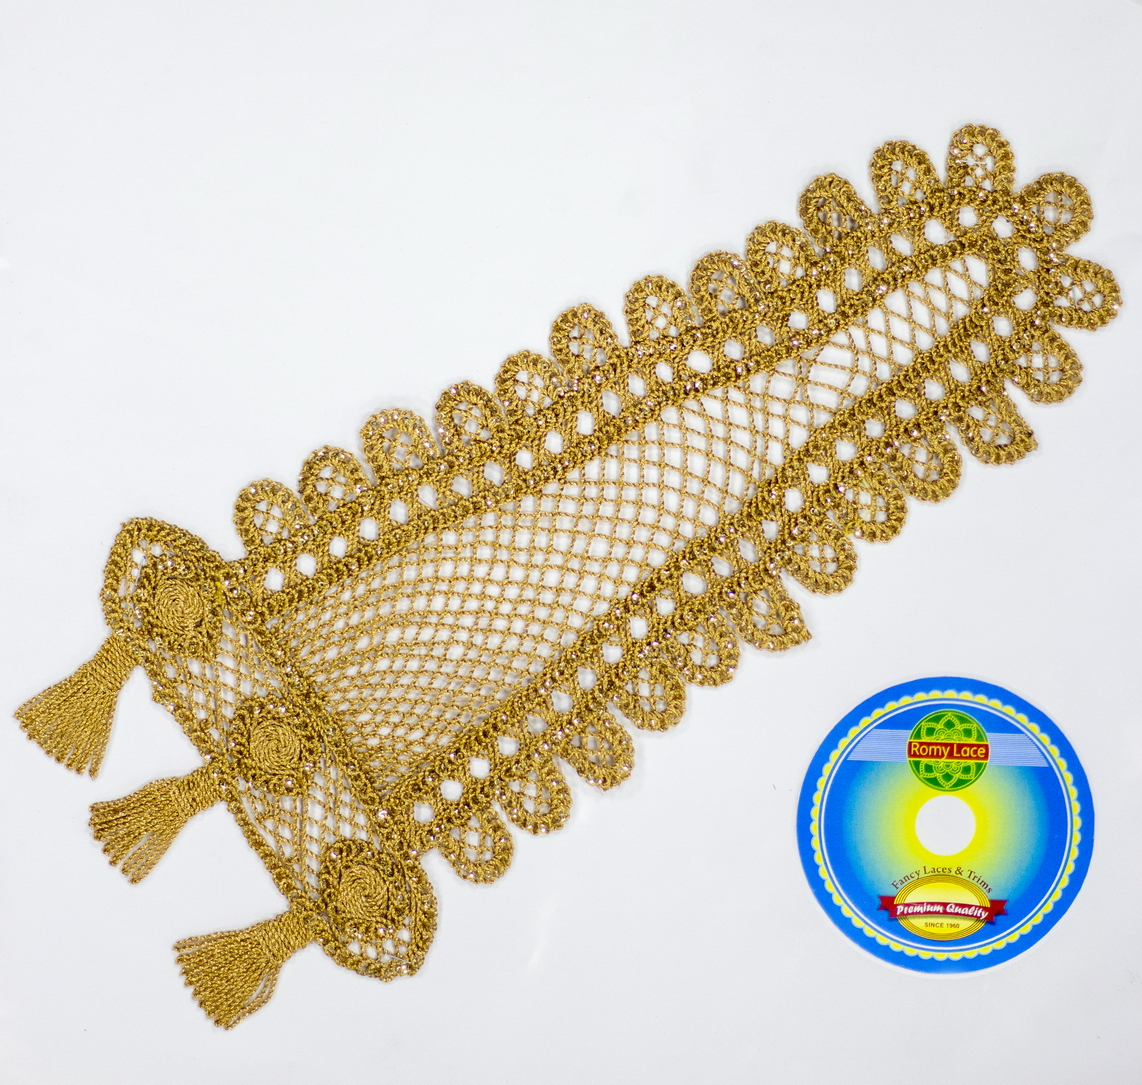 Patches - Romy Lace - Best Lace Manufacturer in Surat, India